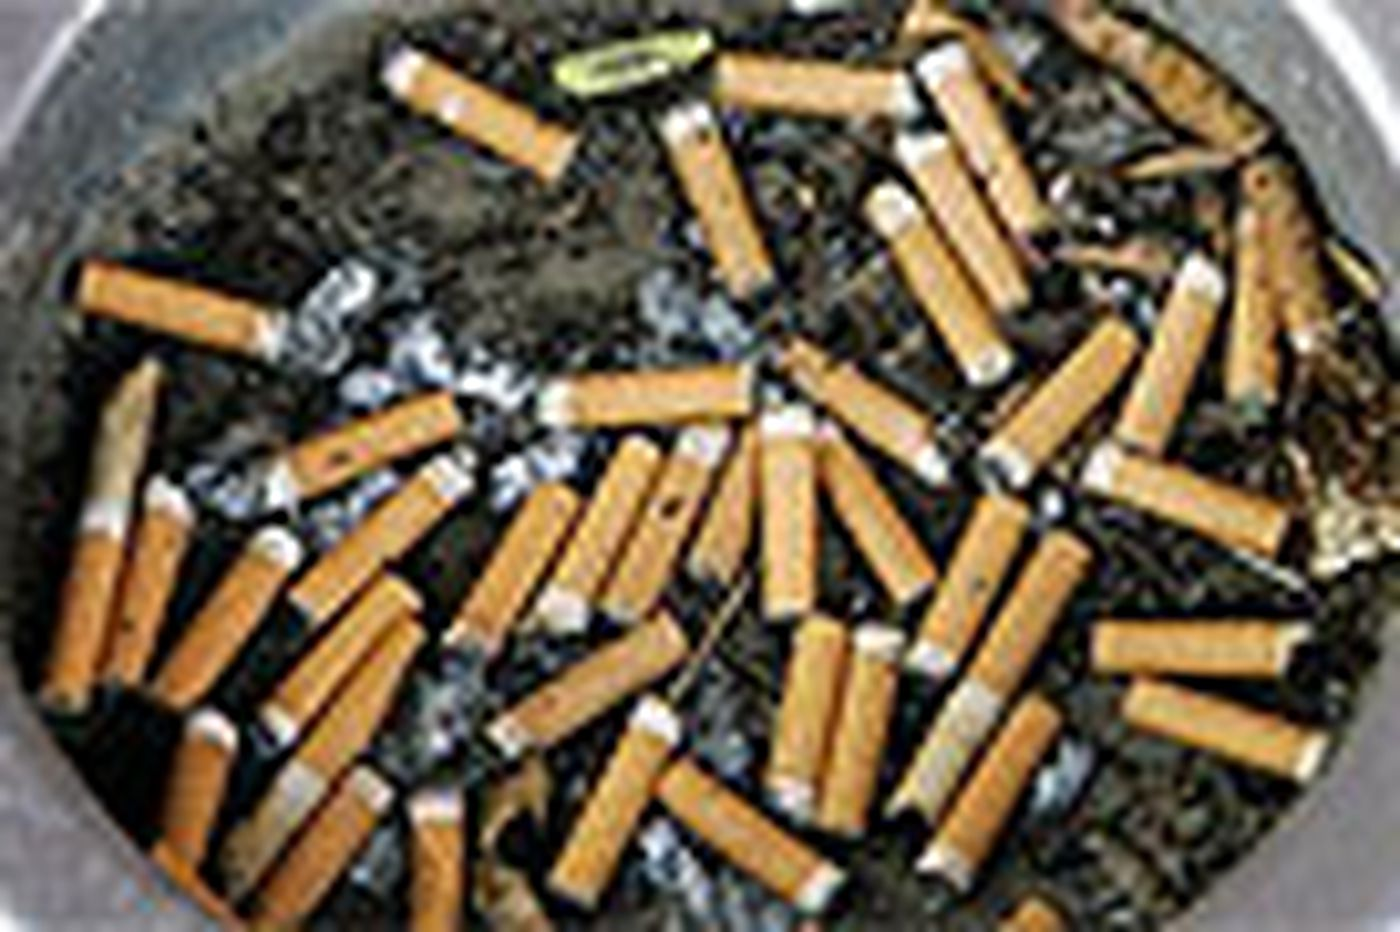 FDA: Tobacco companies must report chemicals